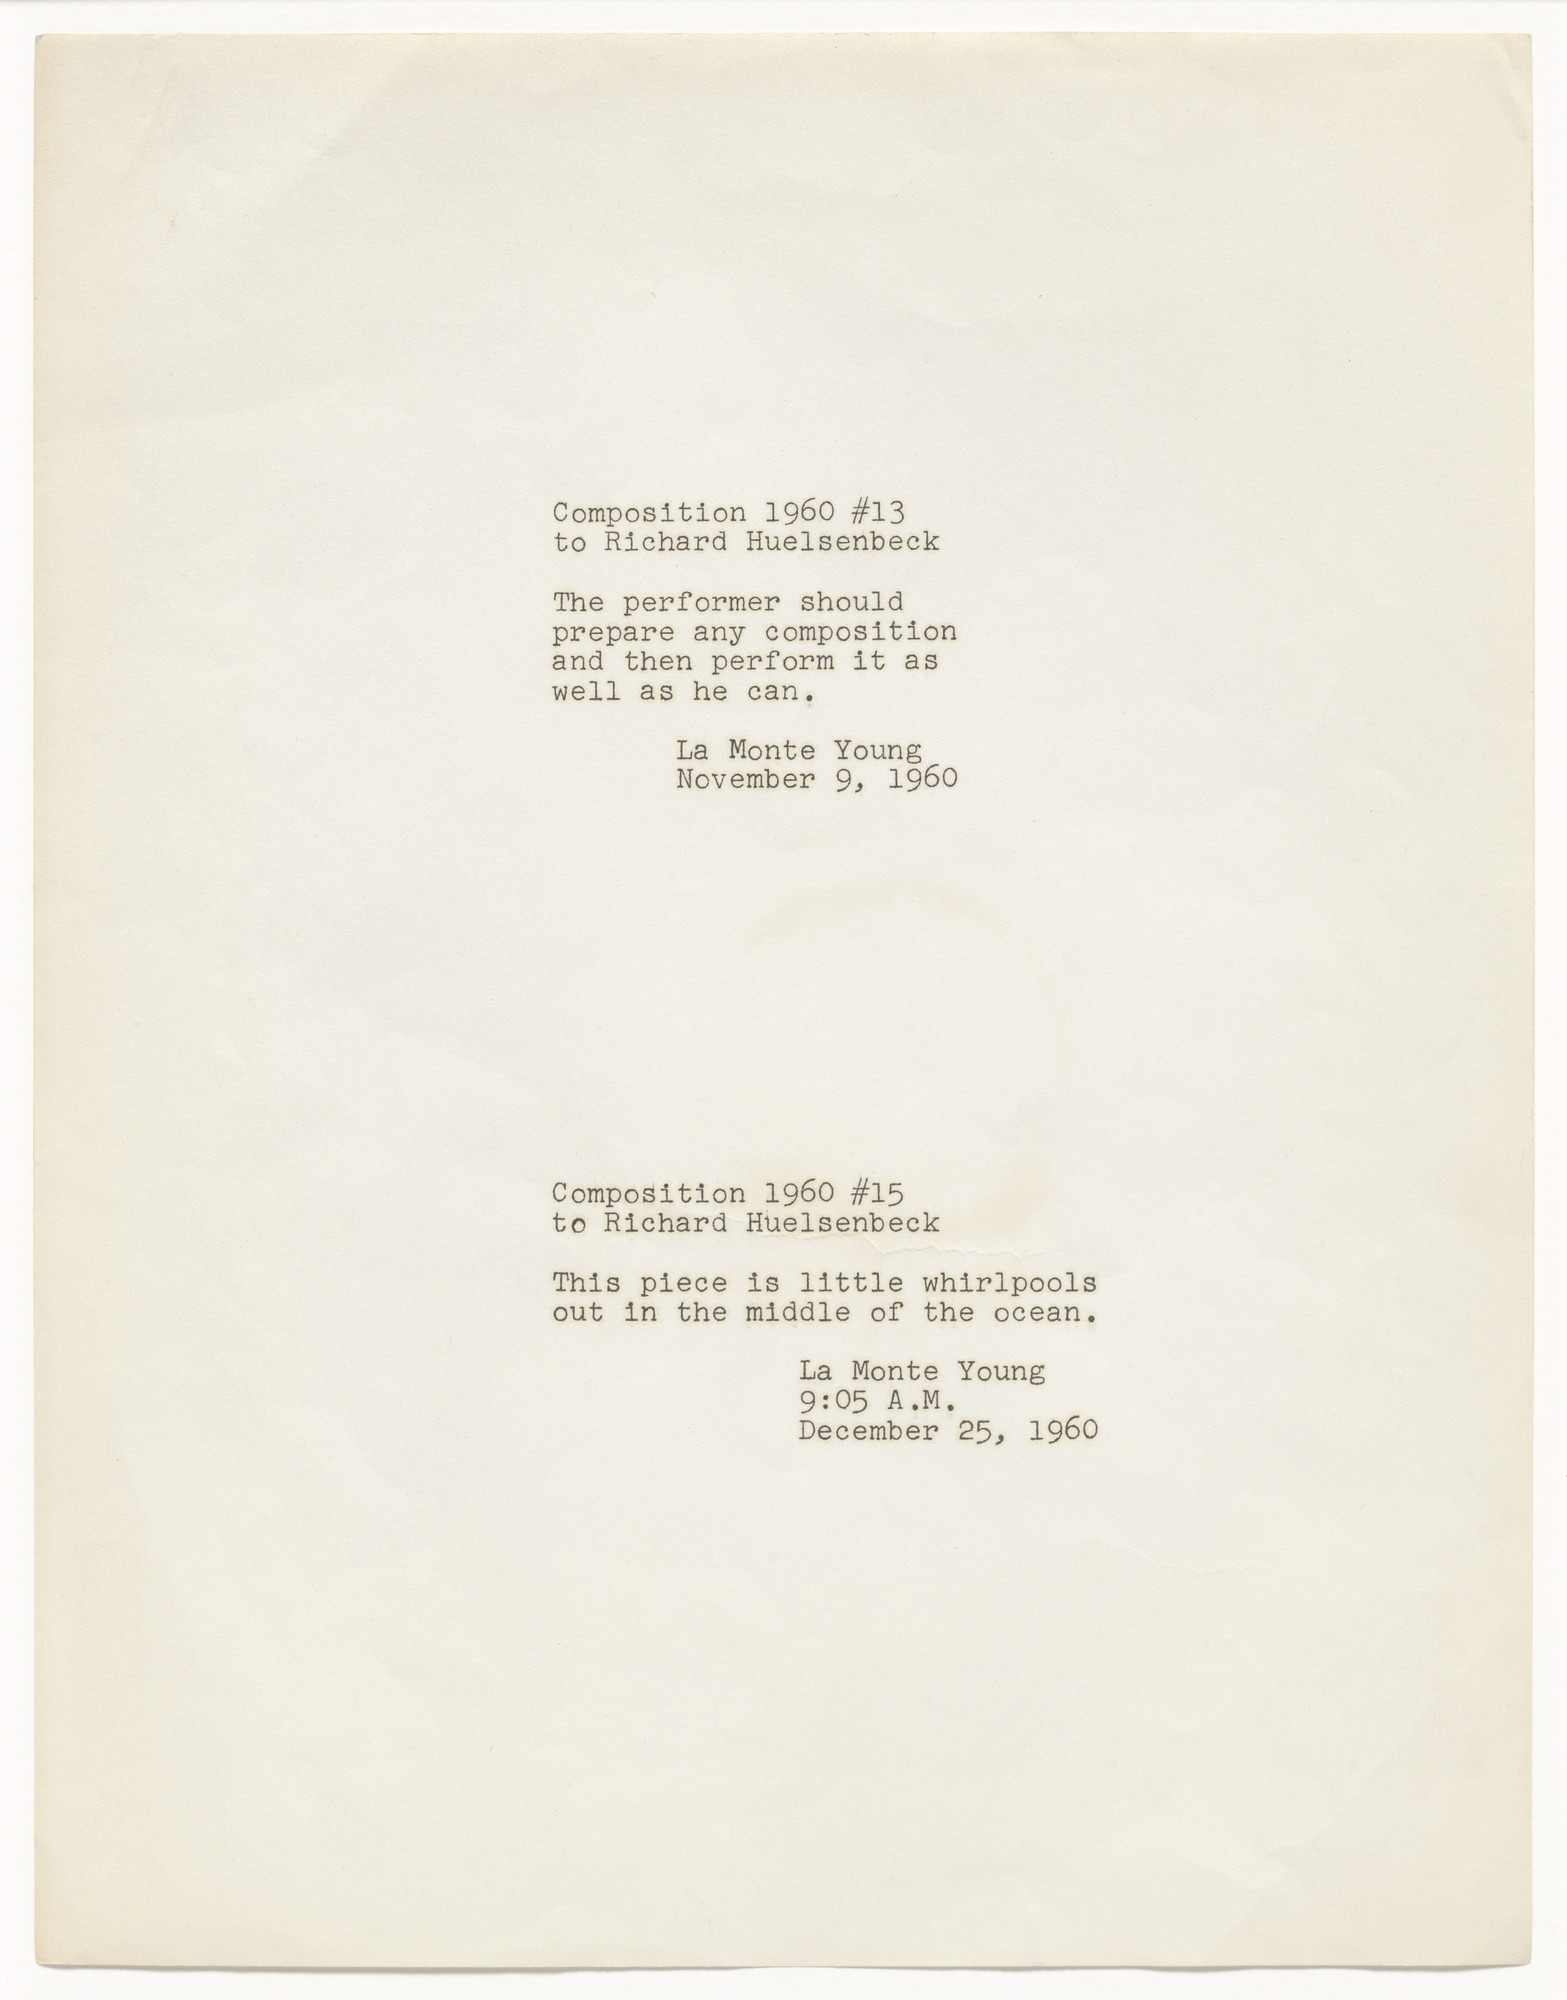 La Monte Young. Composition 1960 #13 to Richard Huelsenbeck and Composition 1960 #15 to Richard Huelsenbeck. 1960